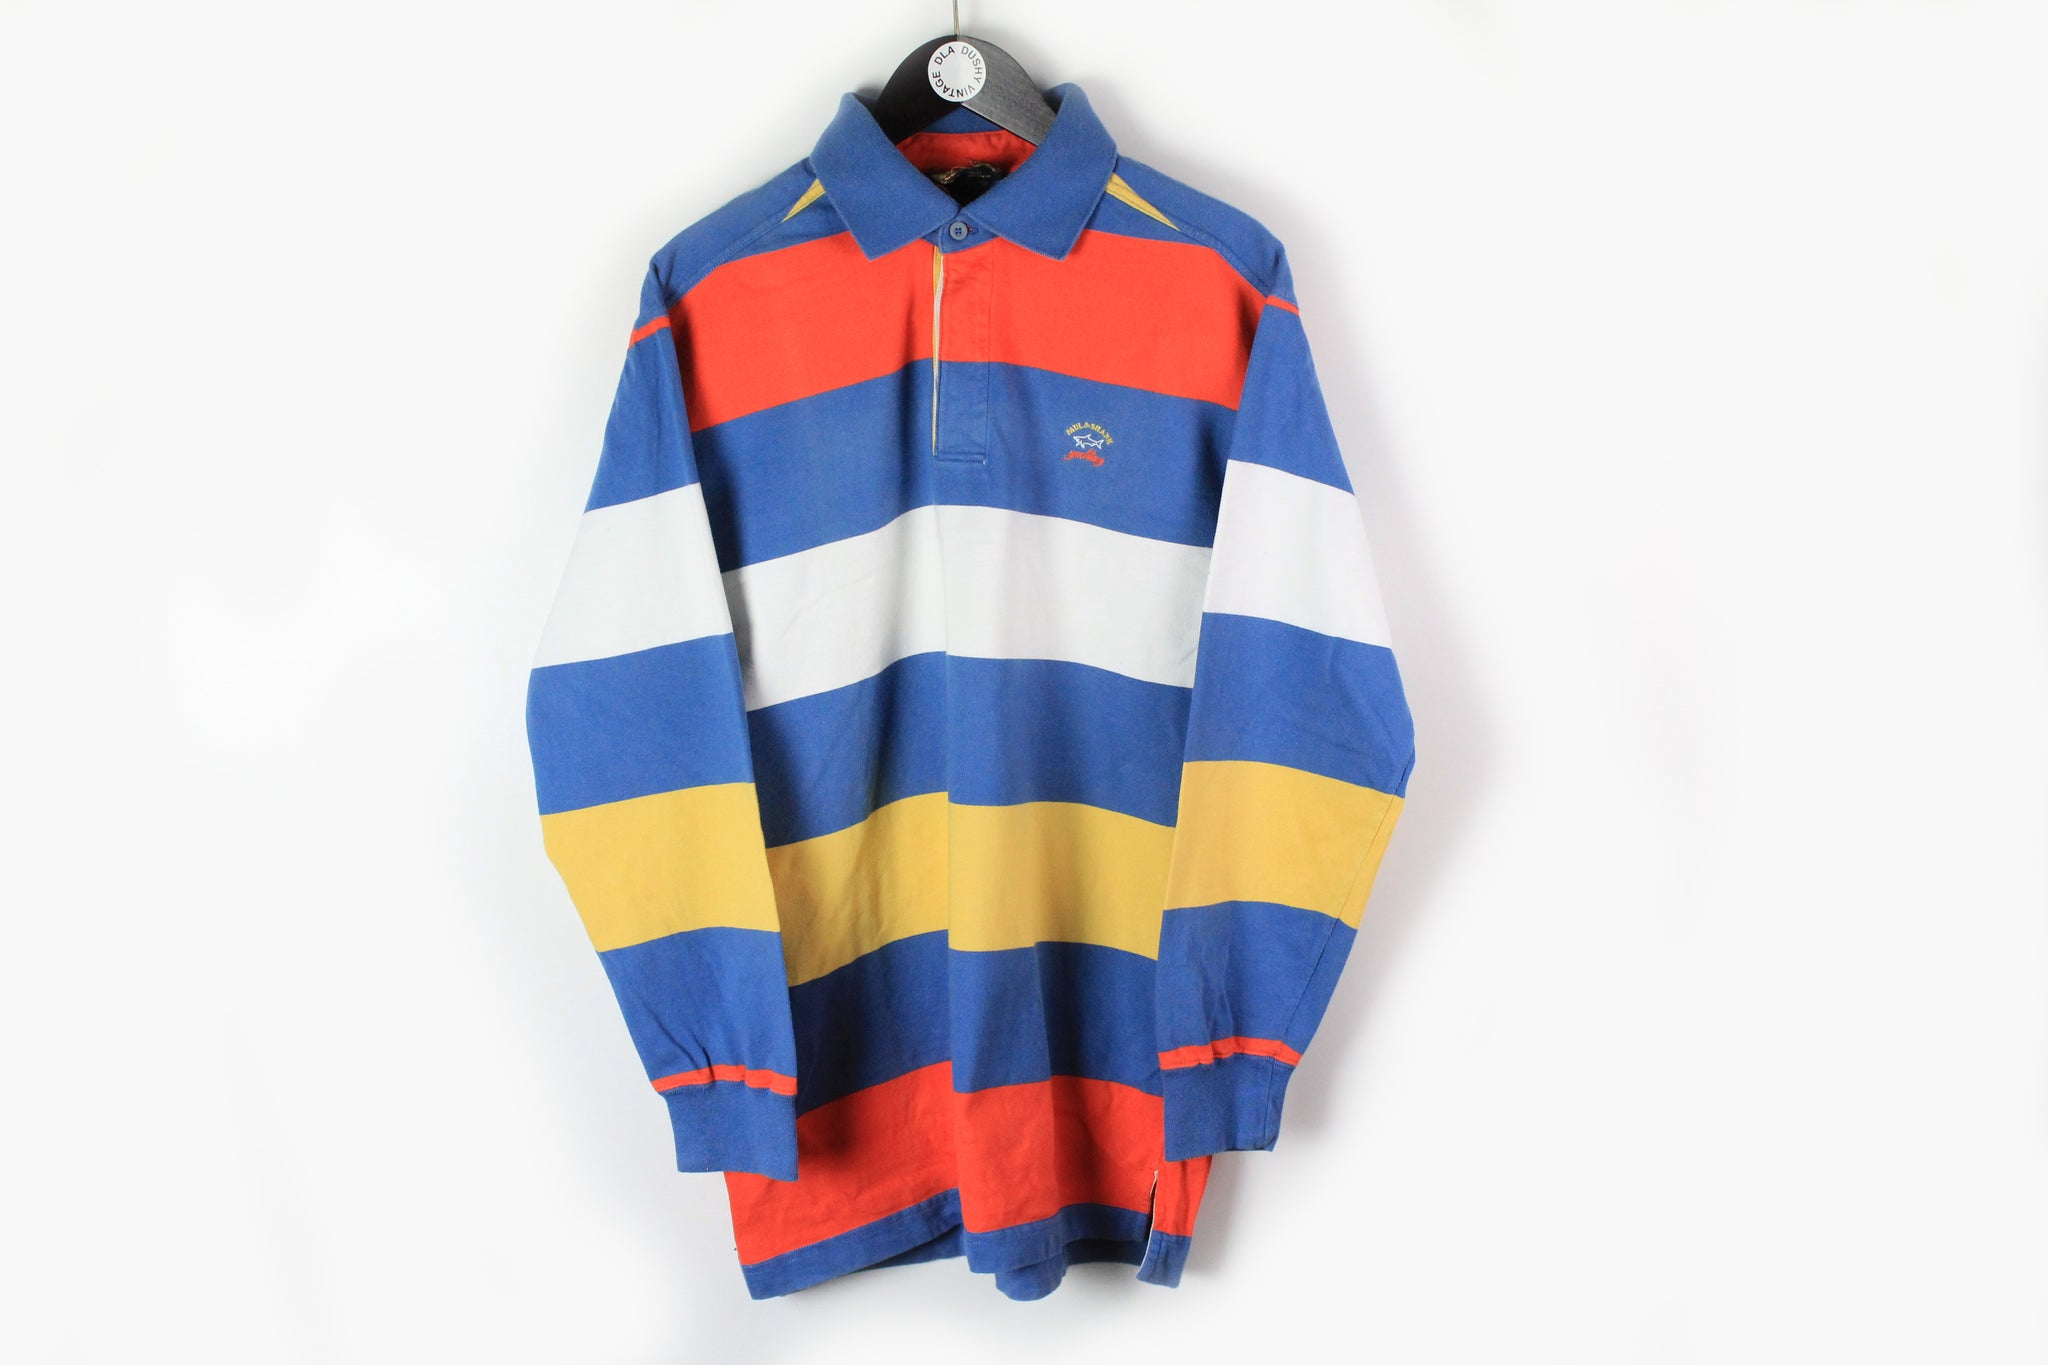 Vintage Paul & Shark Rugby Shirt XLarge multicolor striped 90s sport long sleeve polo t-shirt sweatshirt